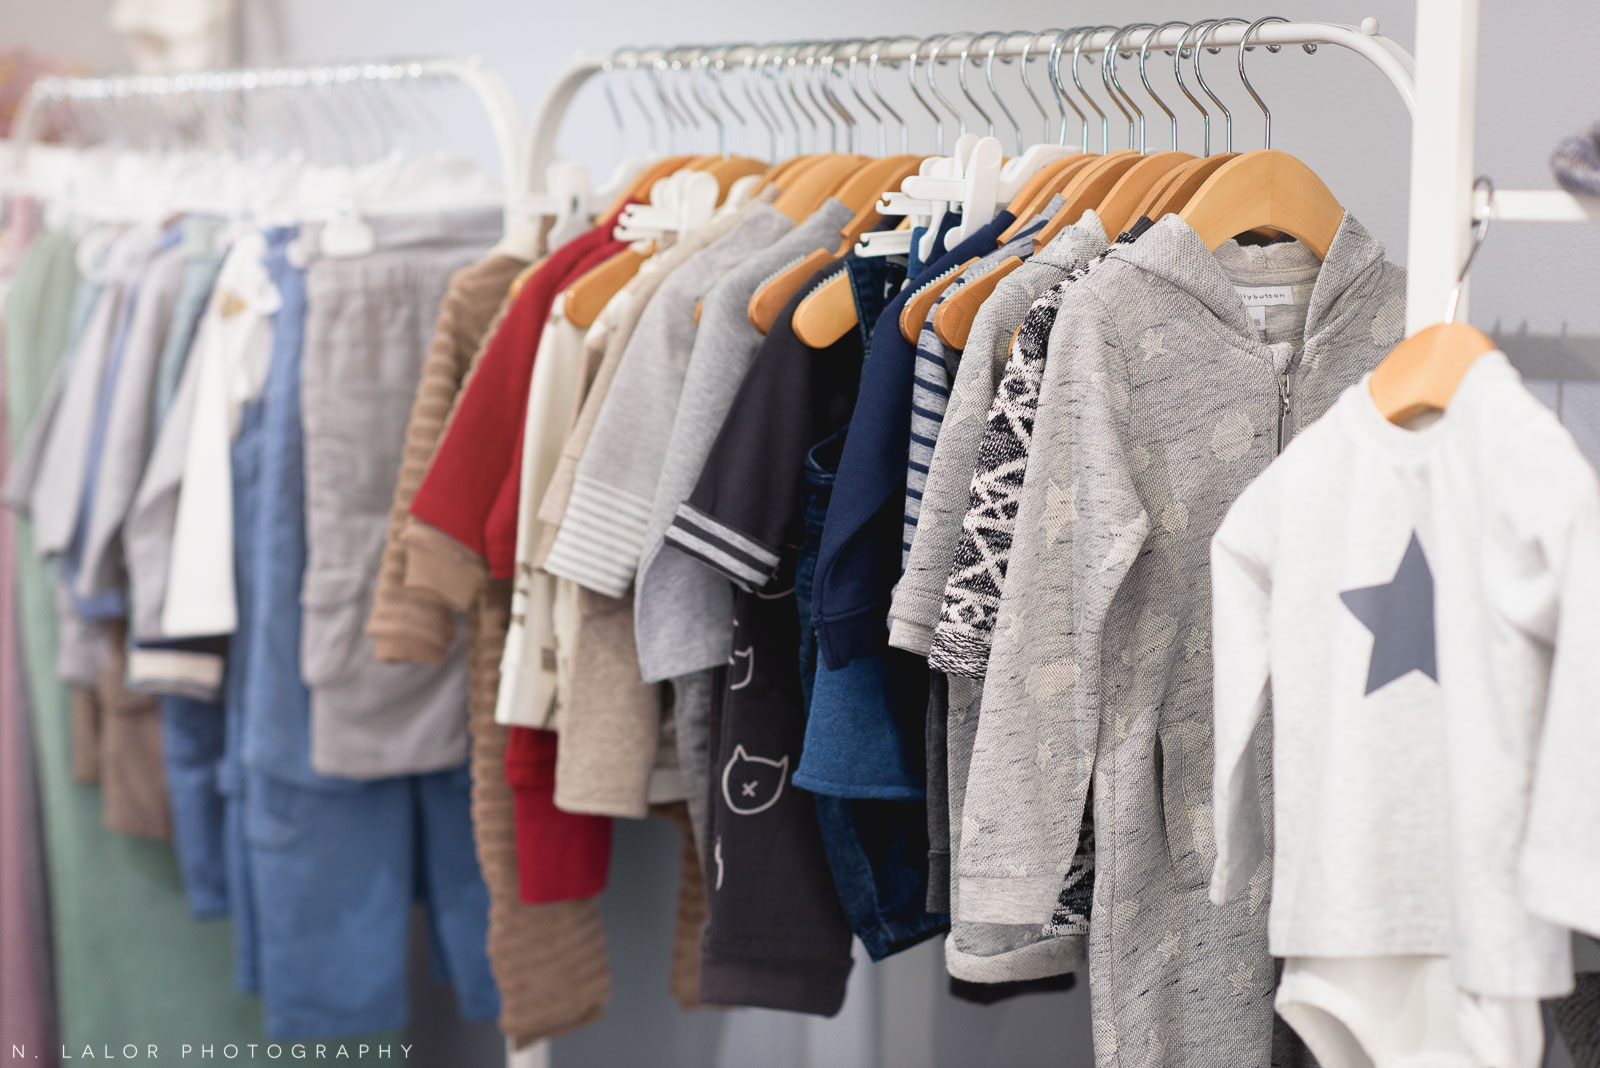 Gorgeous and durable play clothing for children at Ella & Henry in New Canaan. Photo by N. Lalor Photography.